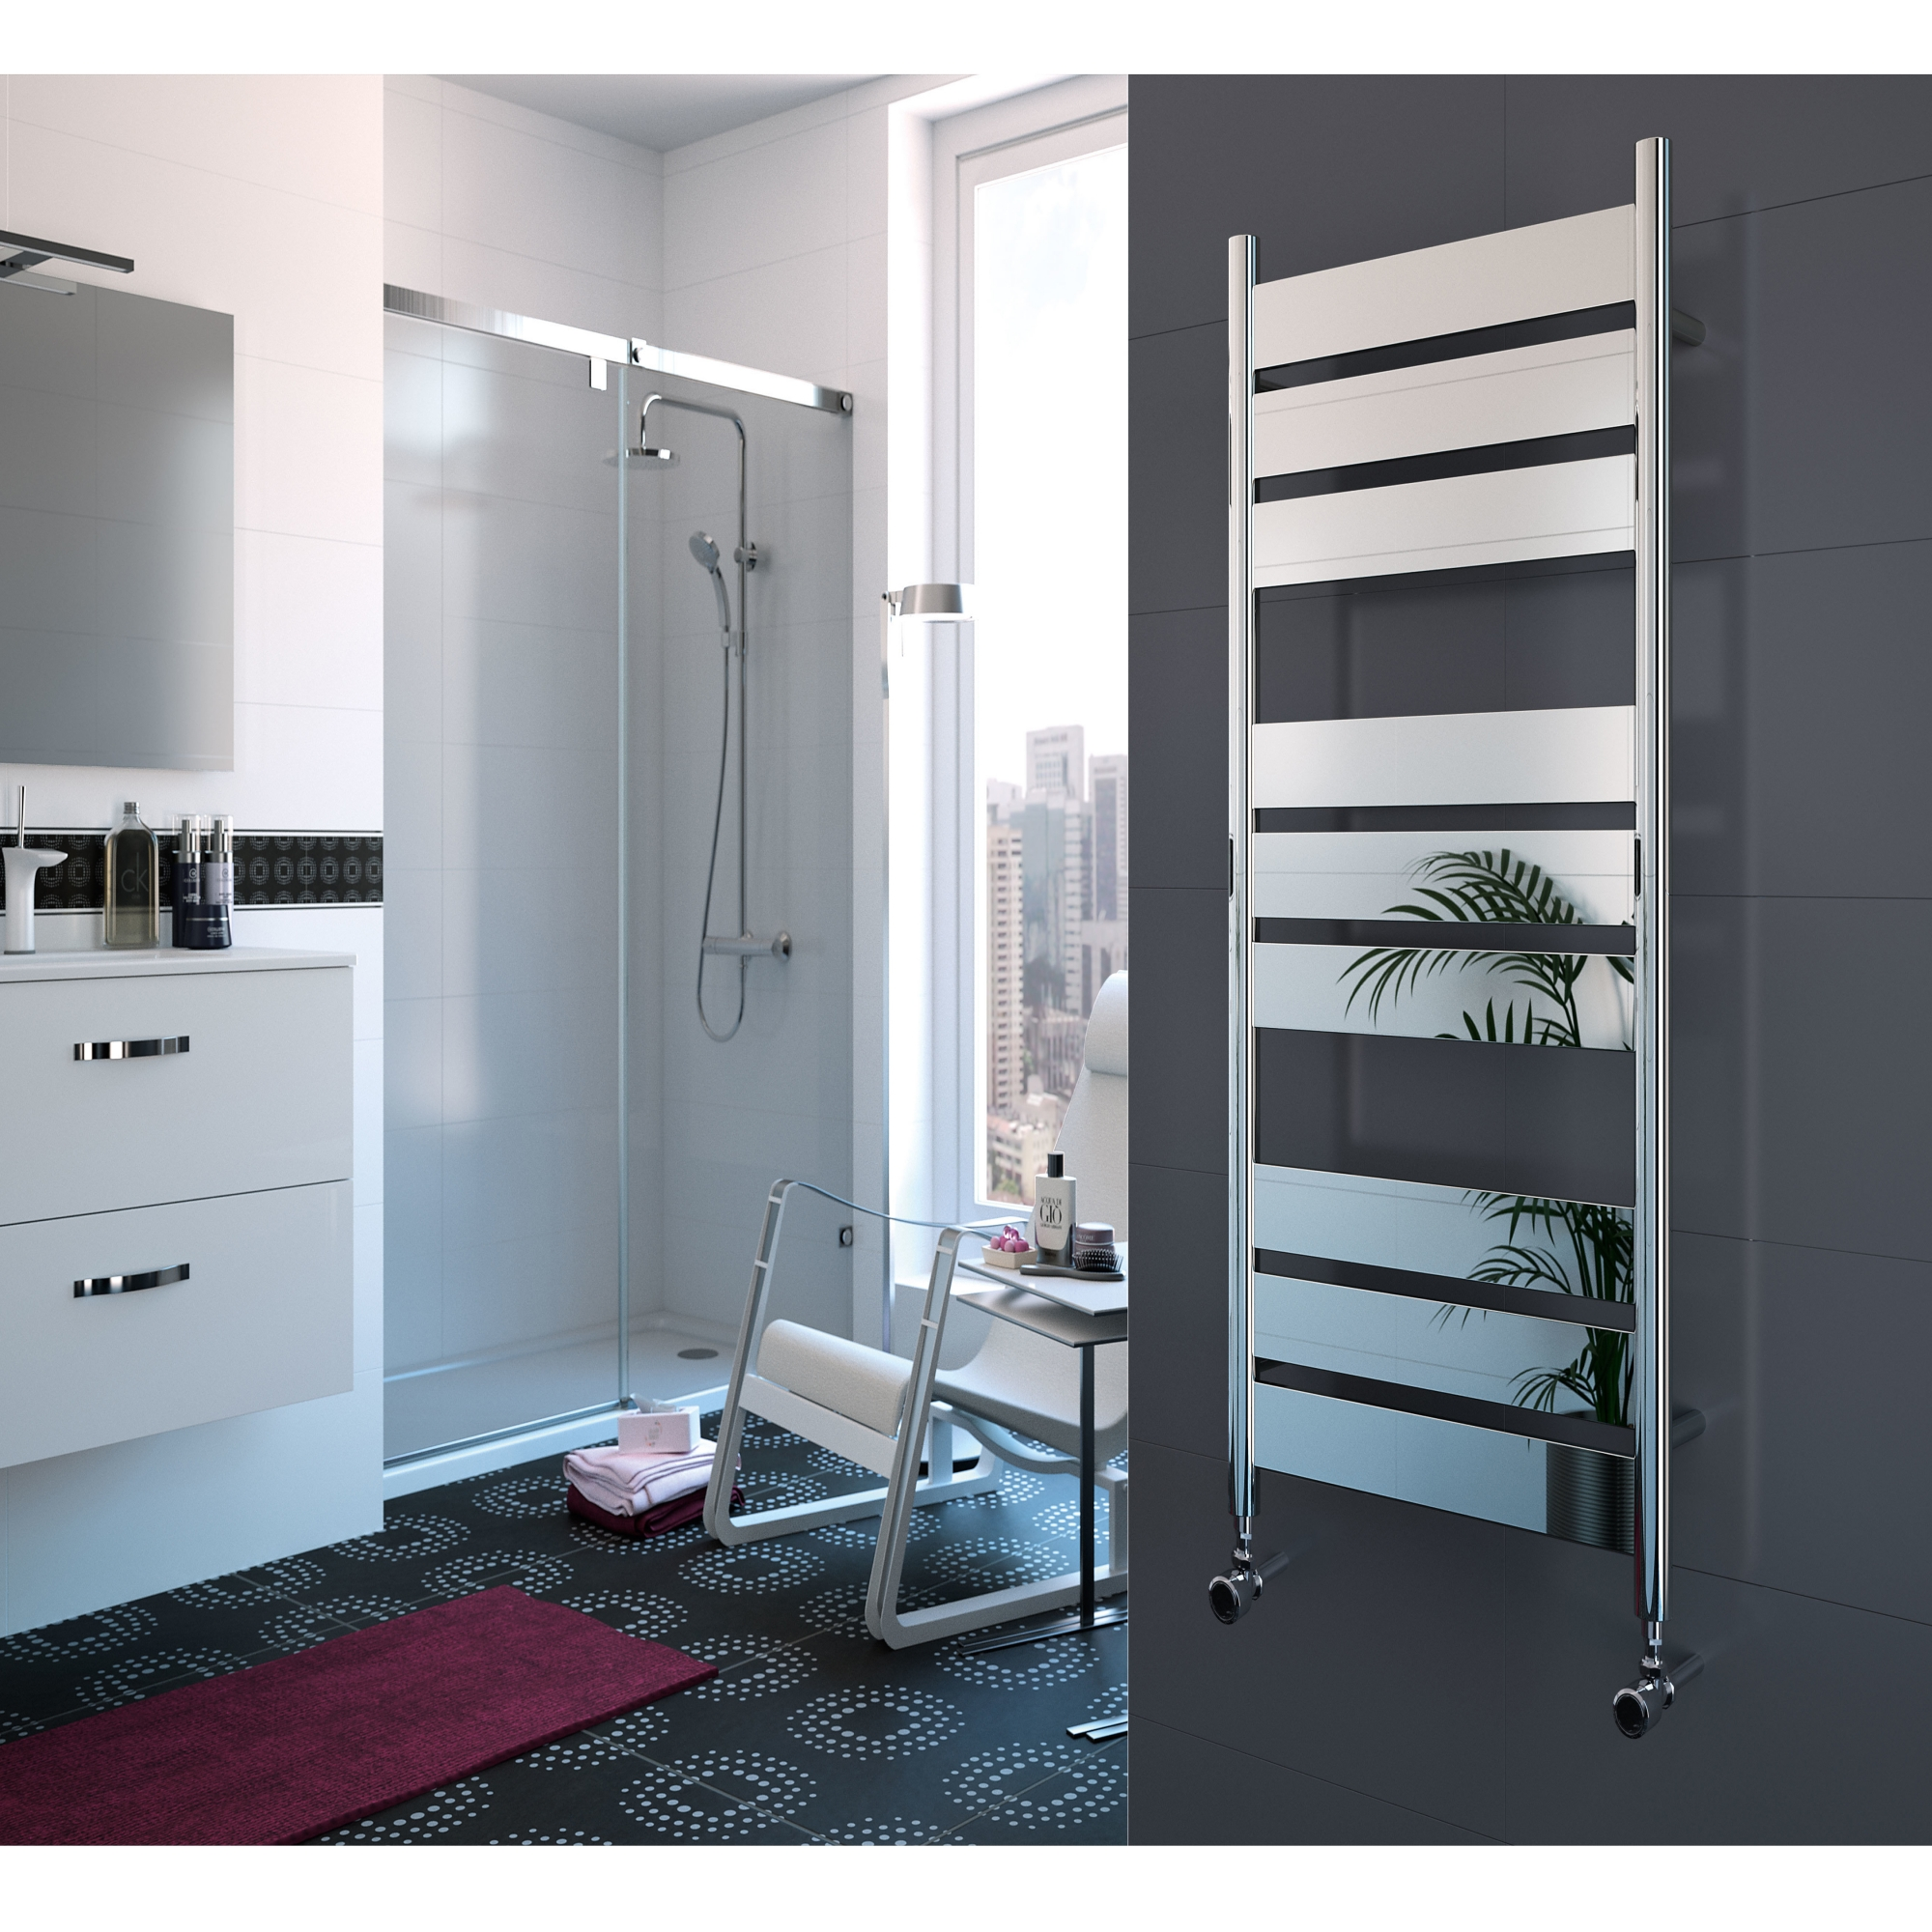 Radox Apollo Designer Heated Towel Rail 1400mm H x 500mm W Chrome